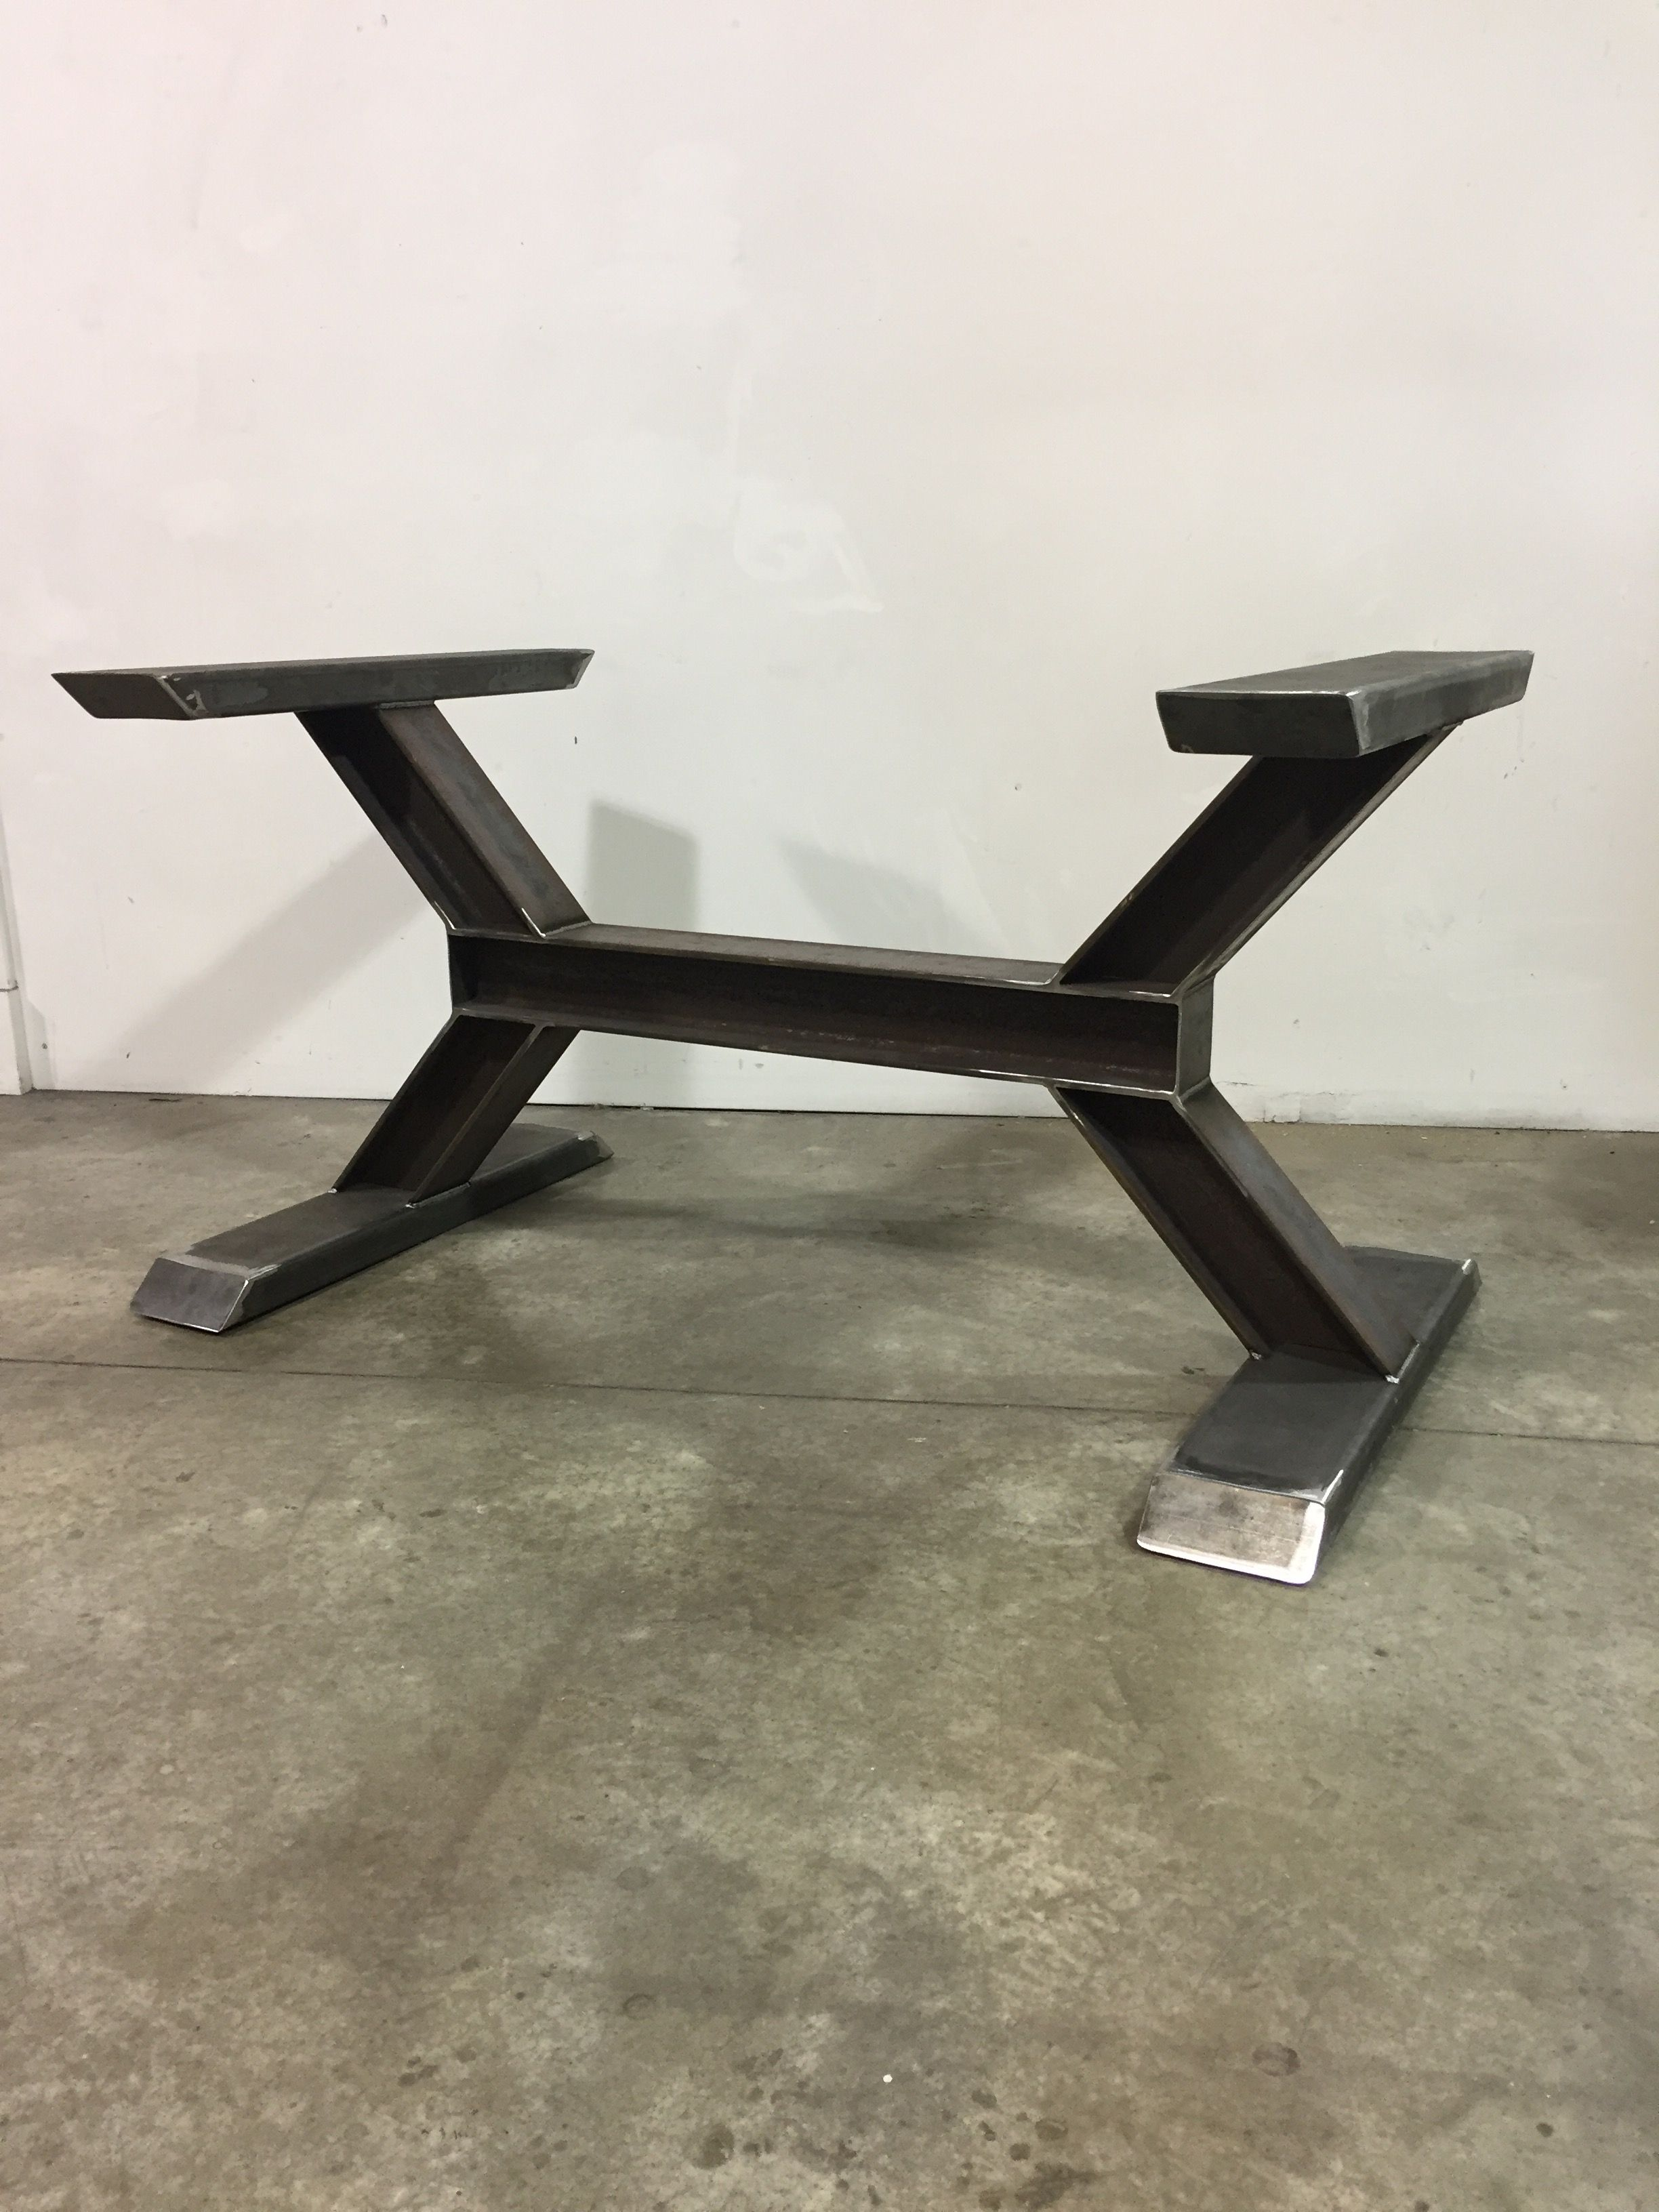 Worxx I Beam Table Base Welded Furniture Steel Table Base Steel Furniture